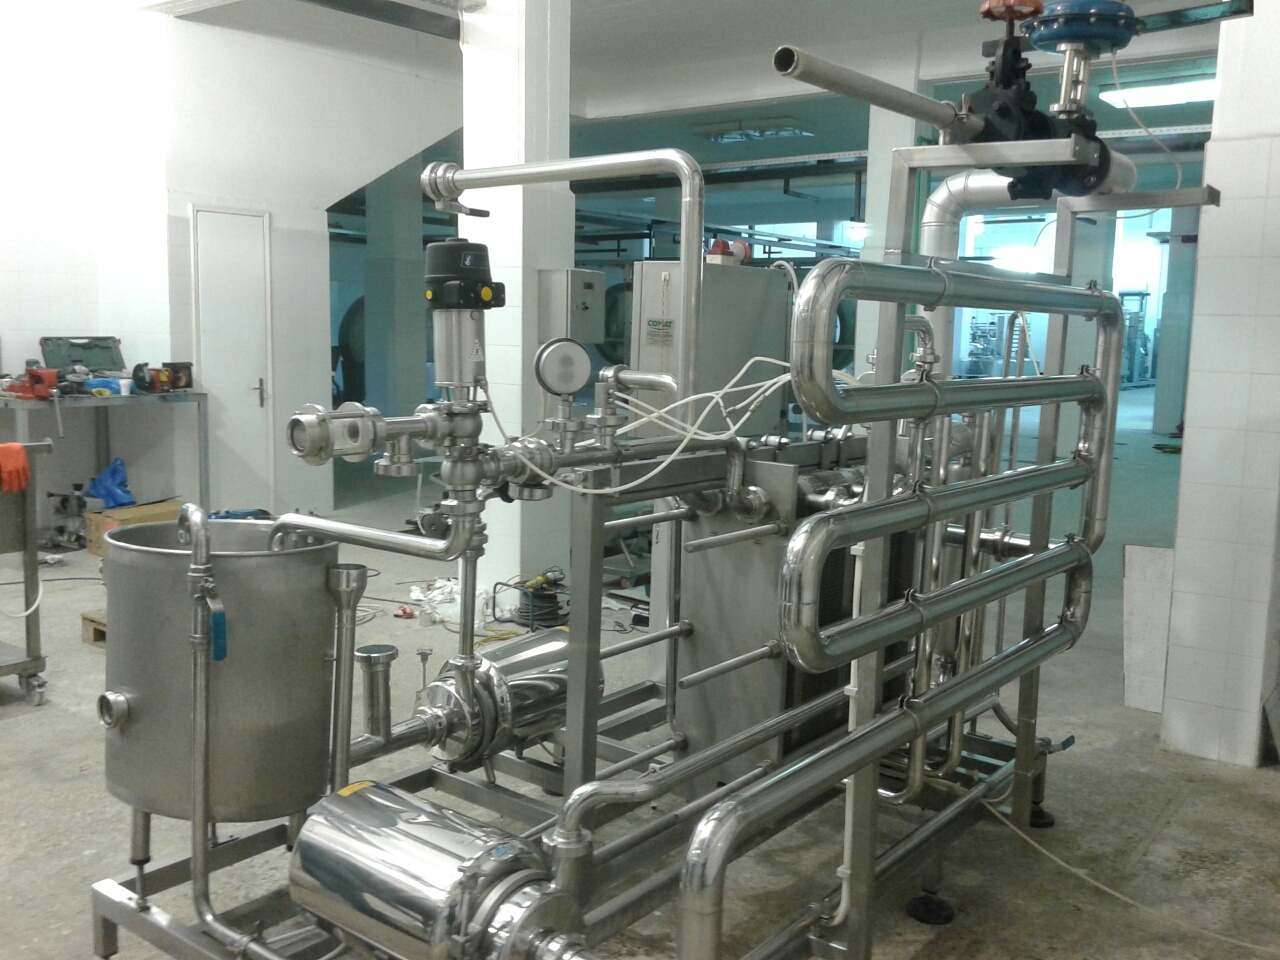 Lot 30 - Comat Skid-Mounted Pasteurizer 6000 Ltr Per Hour, Balance Tank, Two Product Pumps,